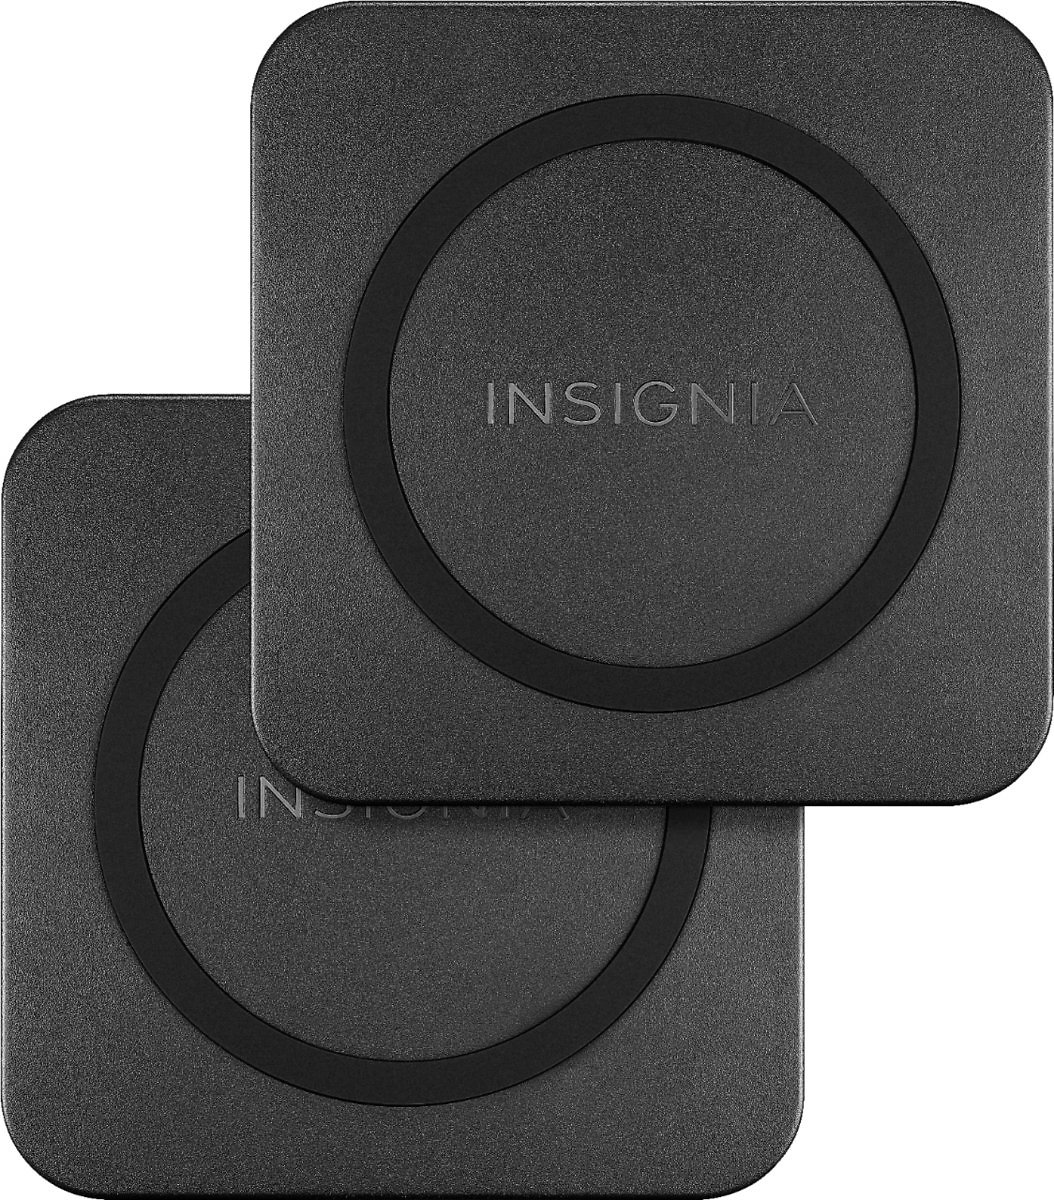 Insignia™ 10 W Qi Certified Wireless Charging Pad for Android/iPhone (2 Pack) Black NS-MWPC10KTP